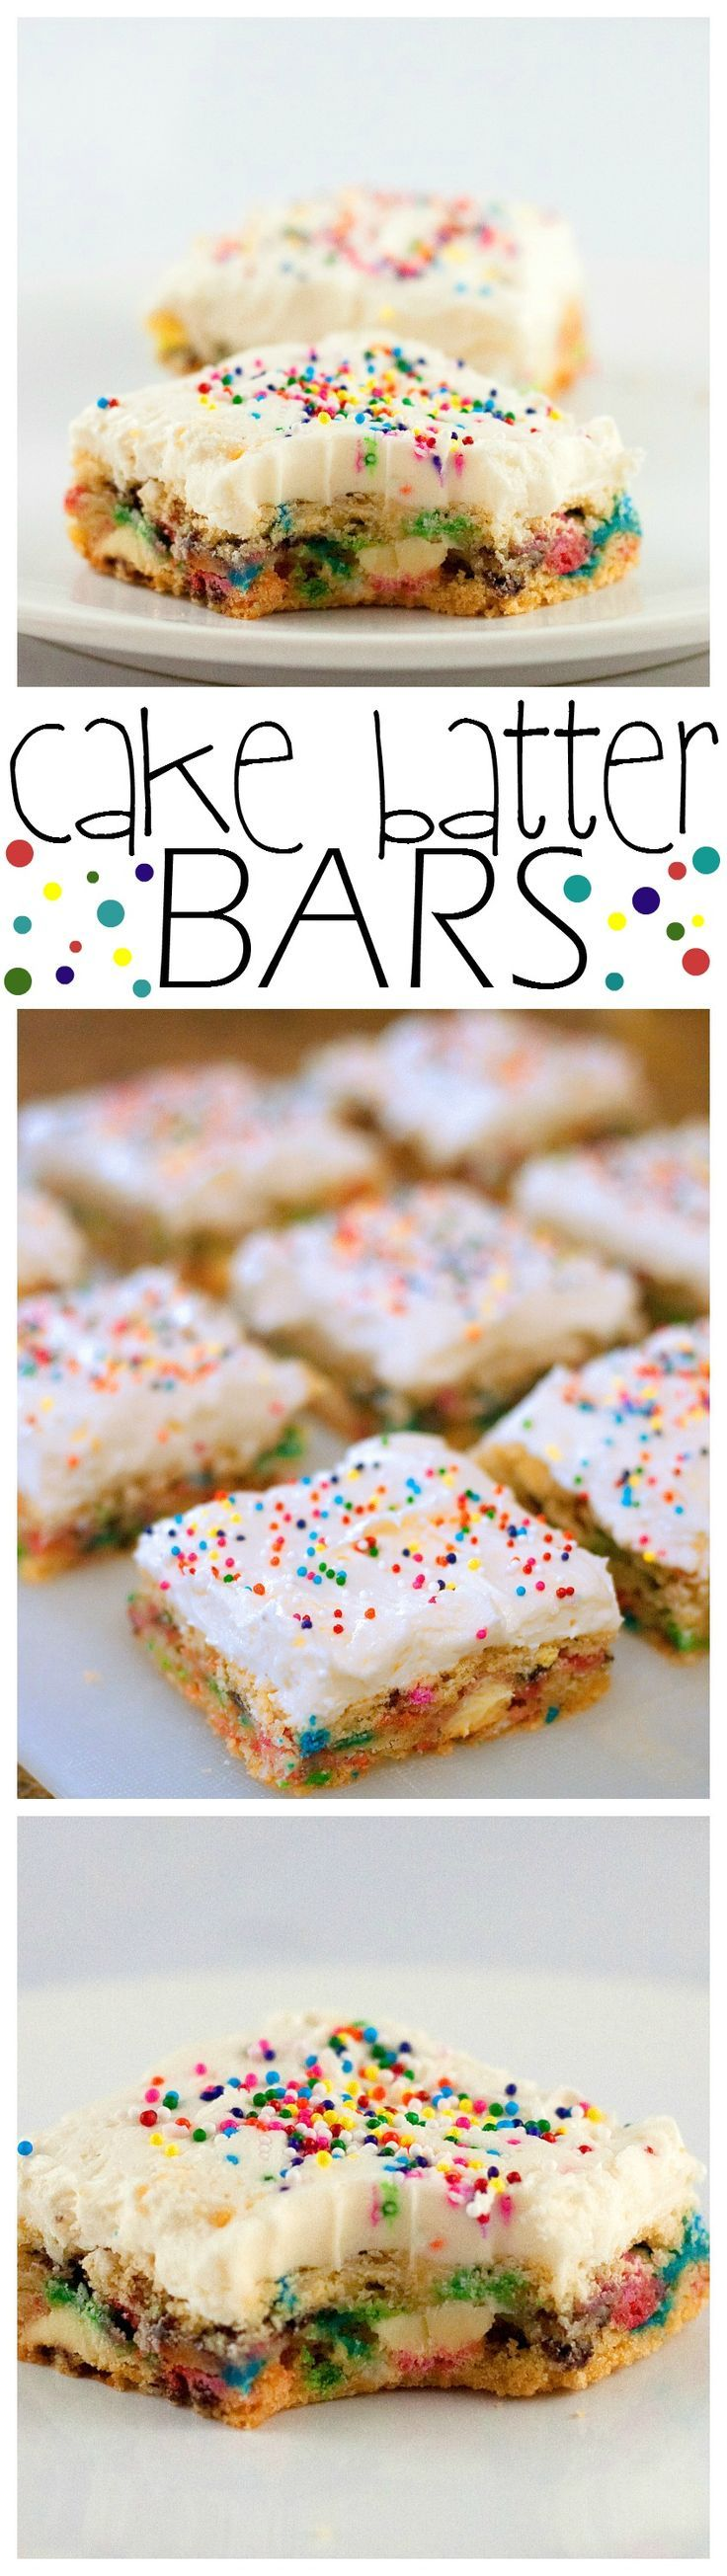 Cake Batter Bars - Baking Beauty